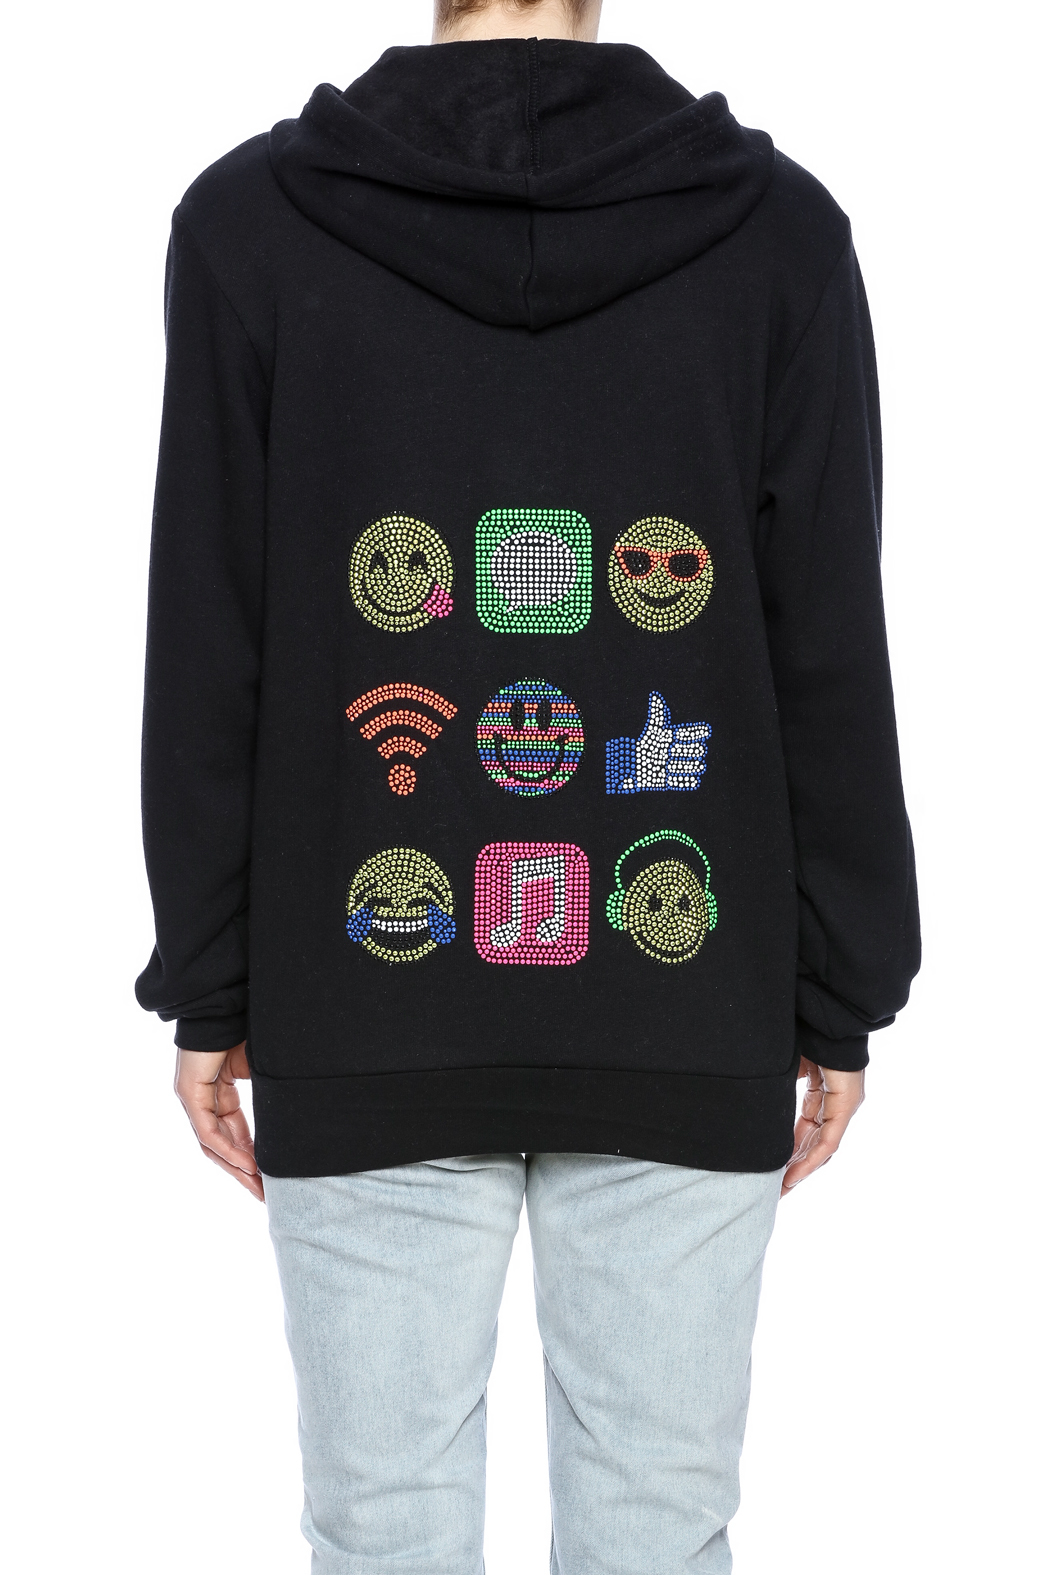 56feeaf0b Butter Super Soft Social Media Applique Hoodie from Long Island by ...